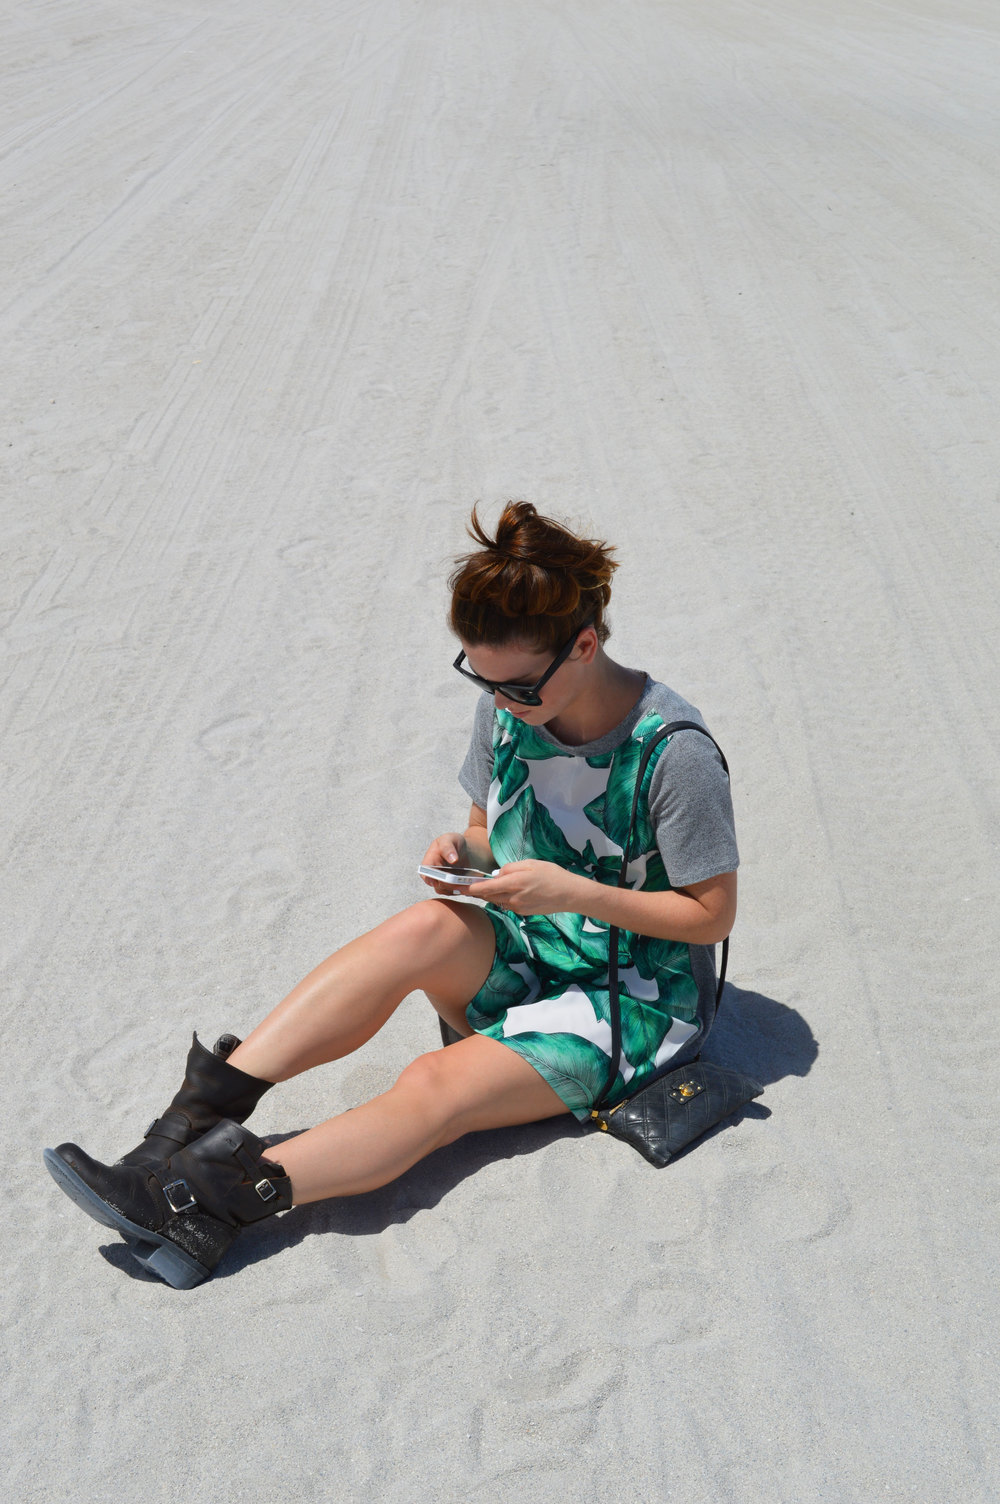 cameo-the-label-printed-palm-t-shirt-dress-frye-boots-style-blogger-miami-florida-south-beach.jpeg